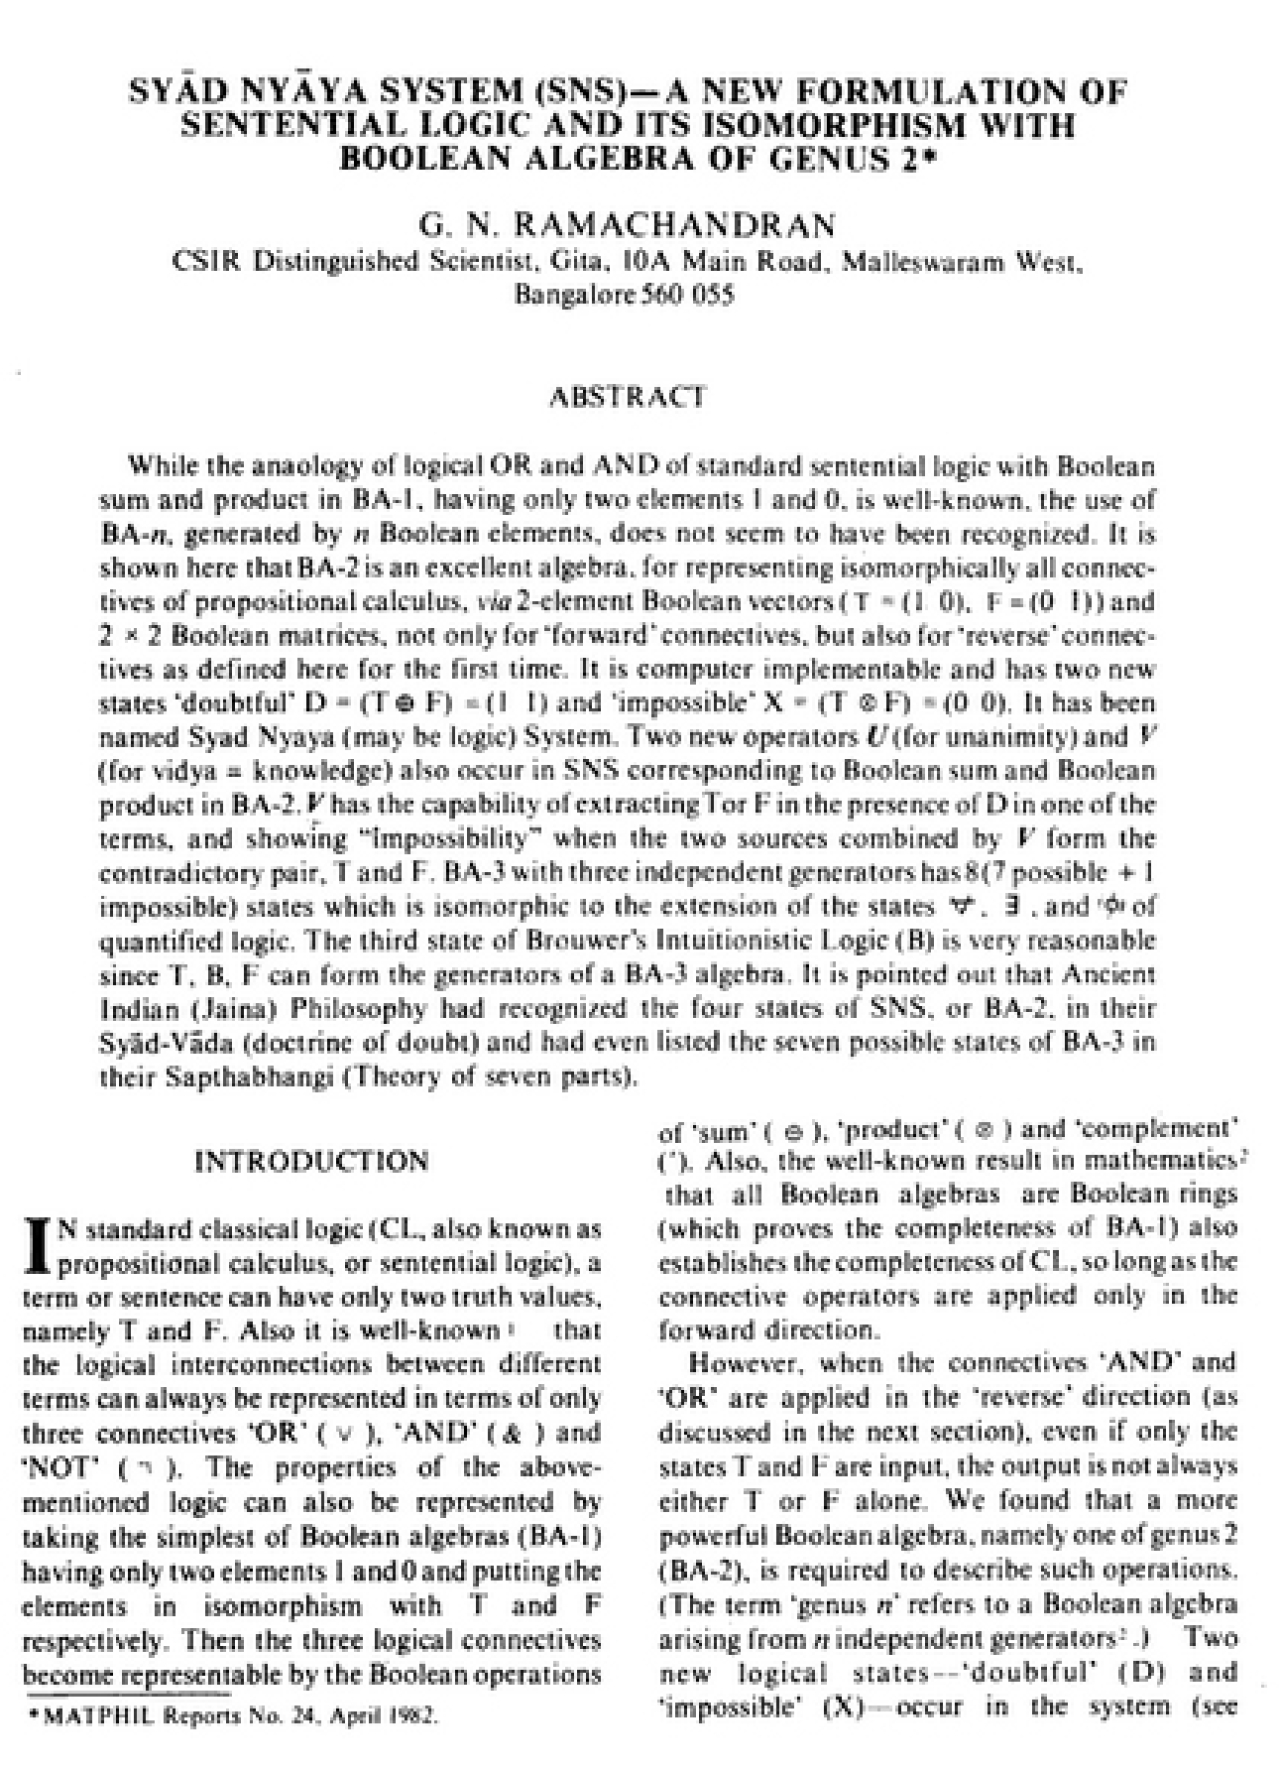 A paper in the journal <i>Current Science</i>